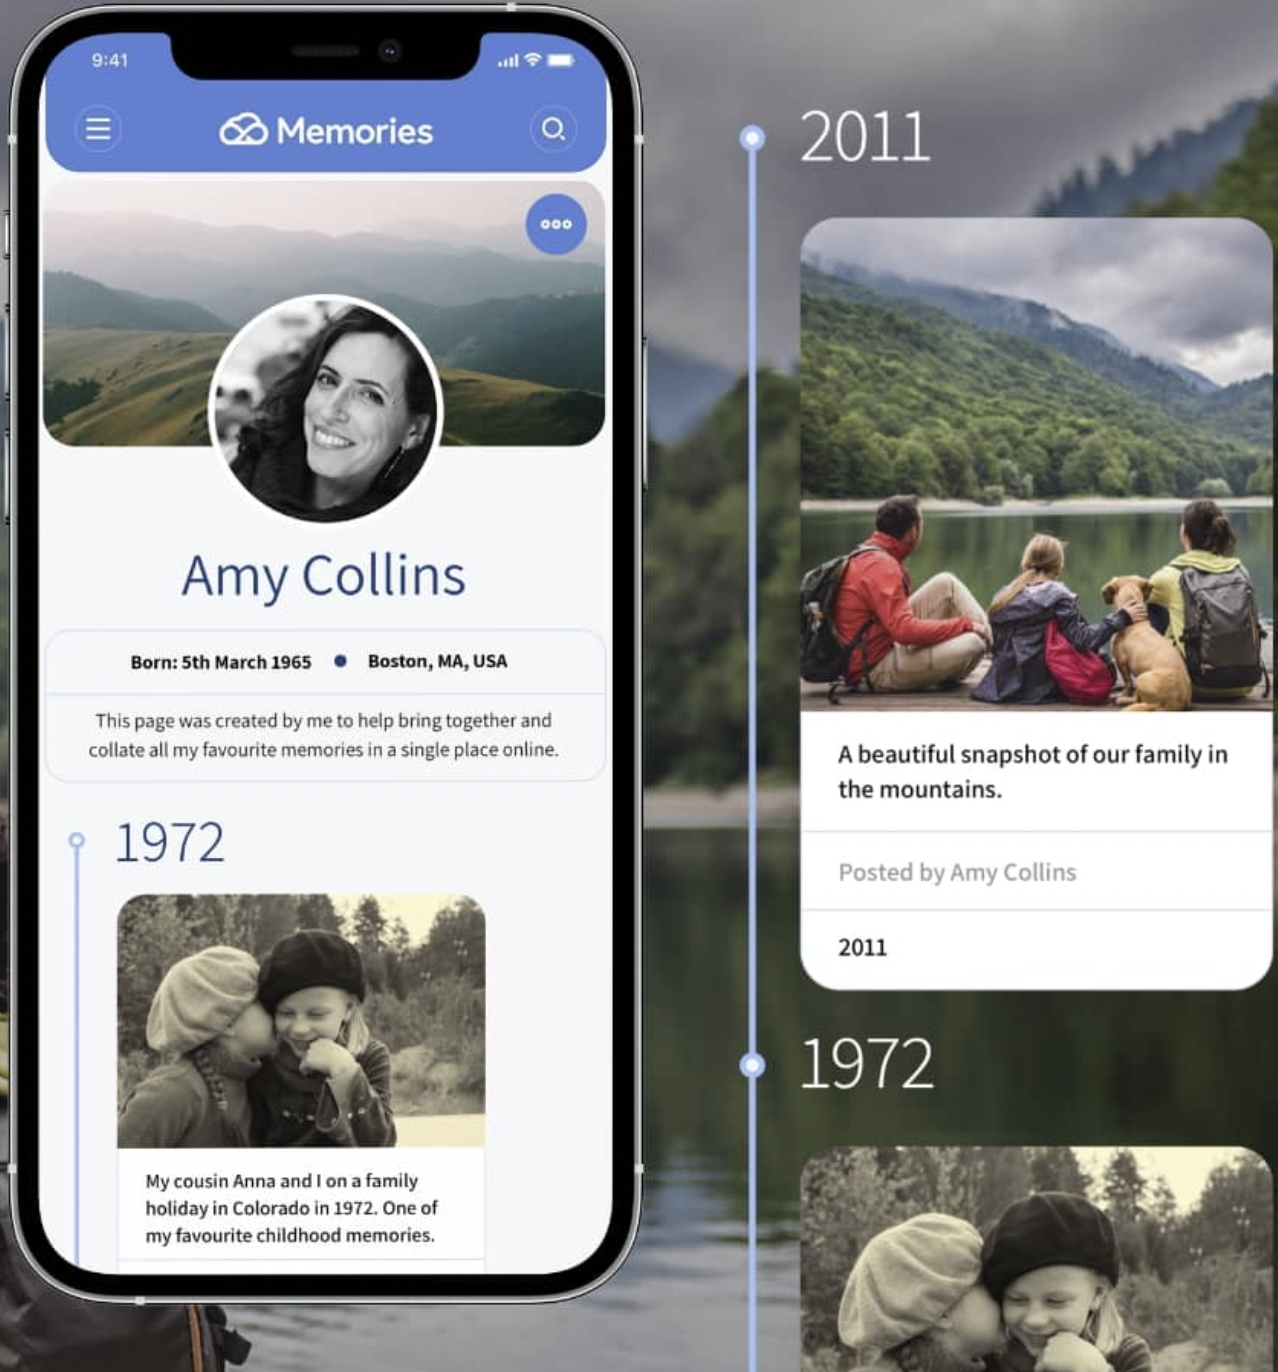 A smartphone showing a Memories app timeline of Amy Collins, and a memory from 1972.